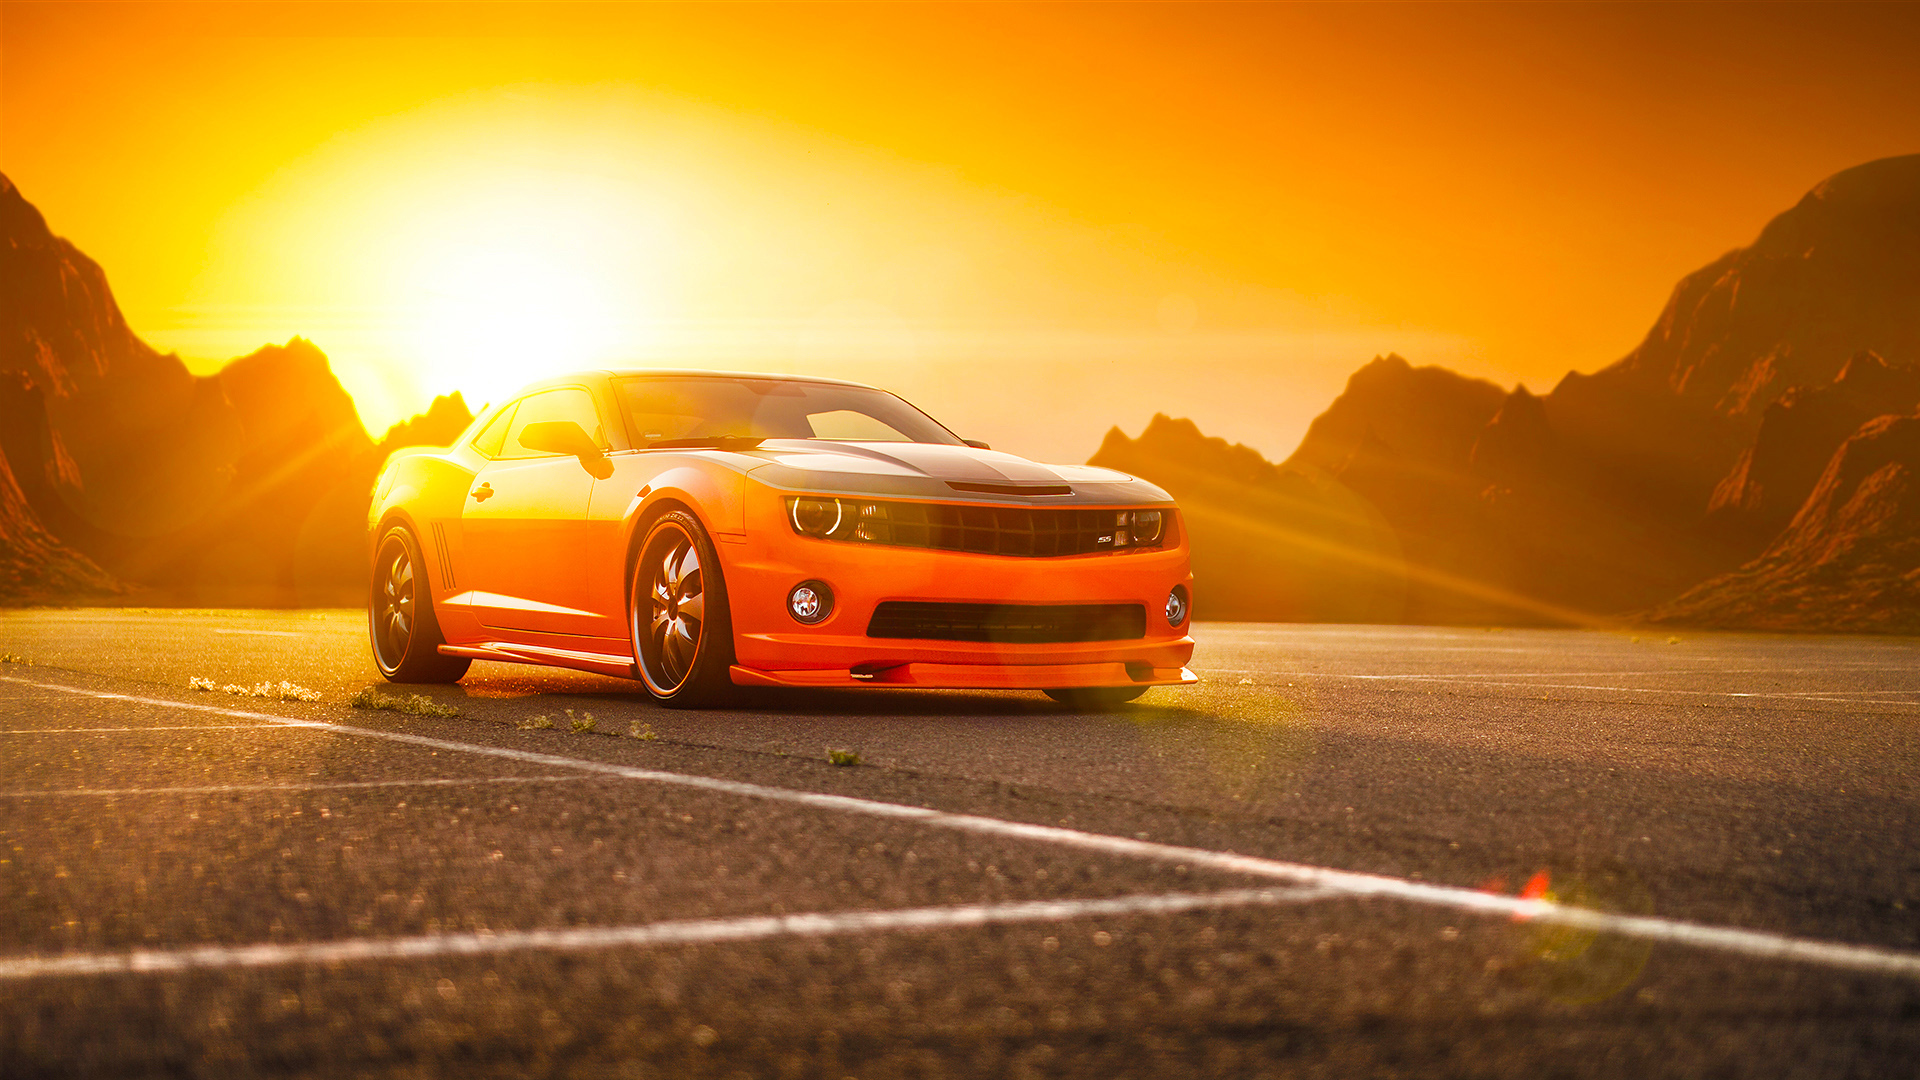 Hd Car Wallpapers For Mobile 28 Wallpapers: Chevrolet Camaro SS Orange Wallpaper